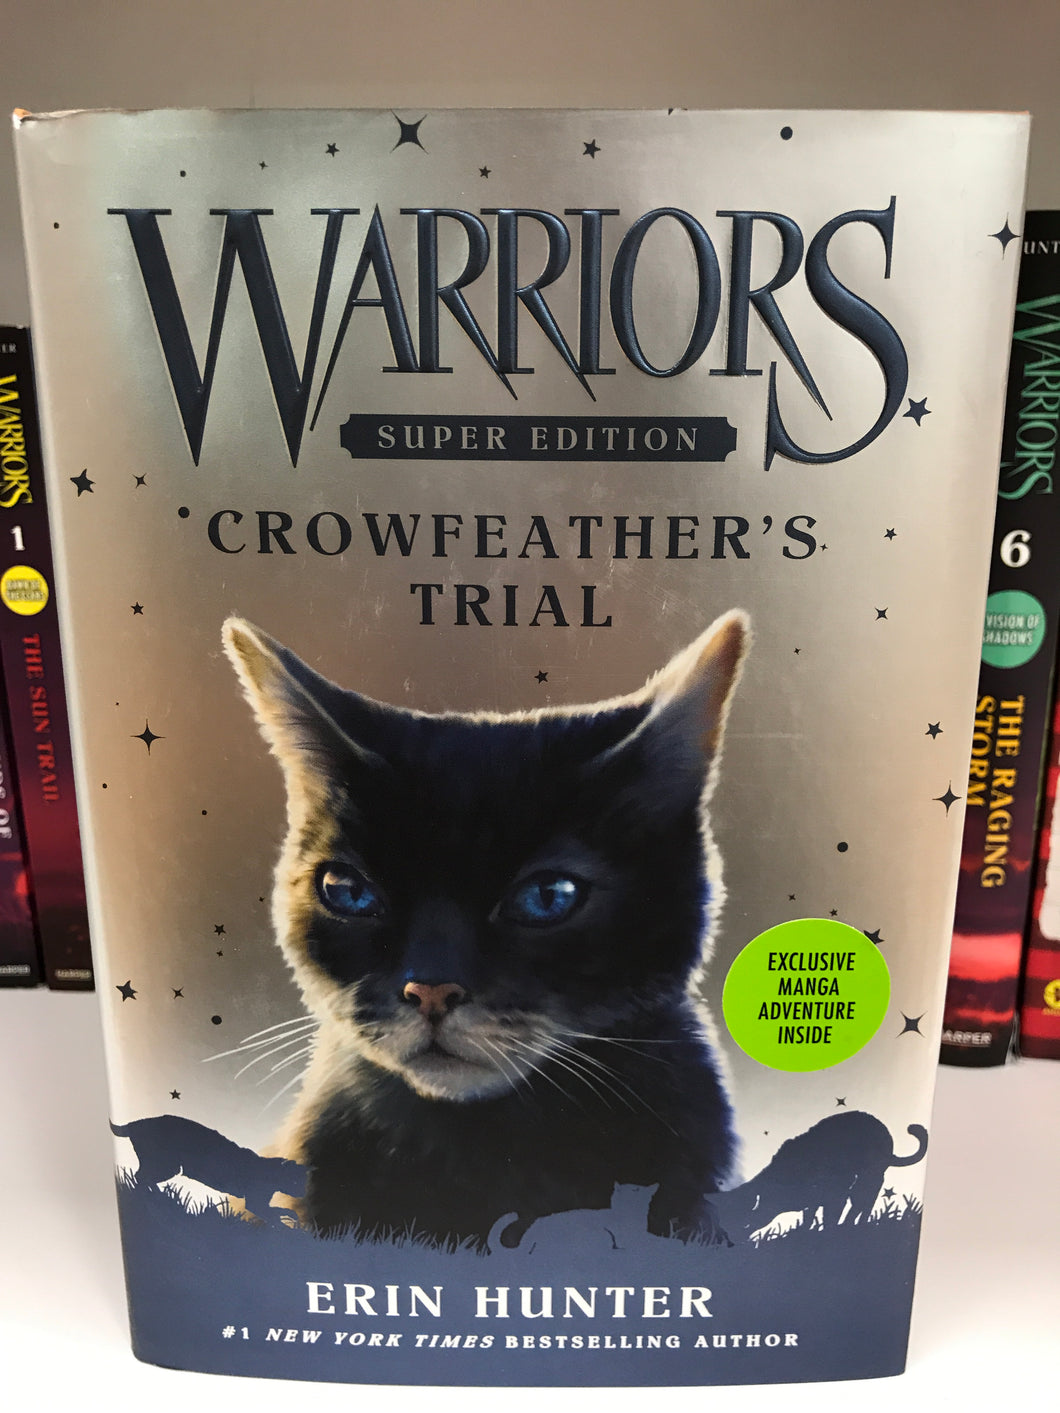 Warriors - Crowfeather's Trial by Erin Hunter